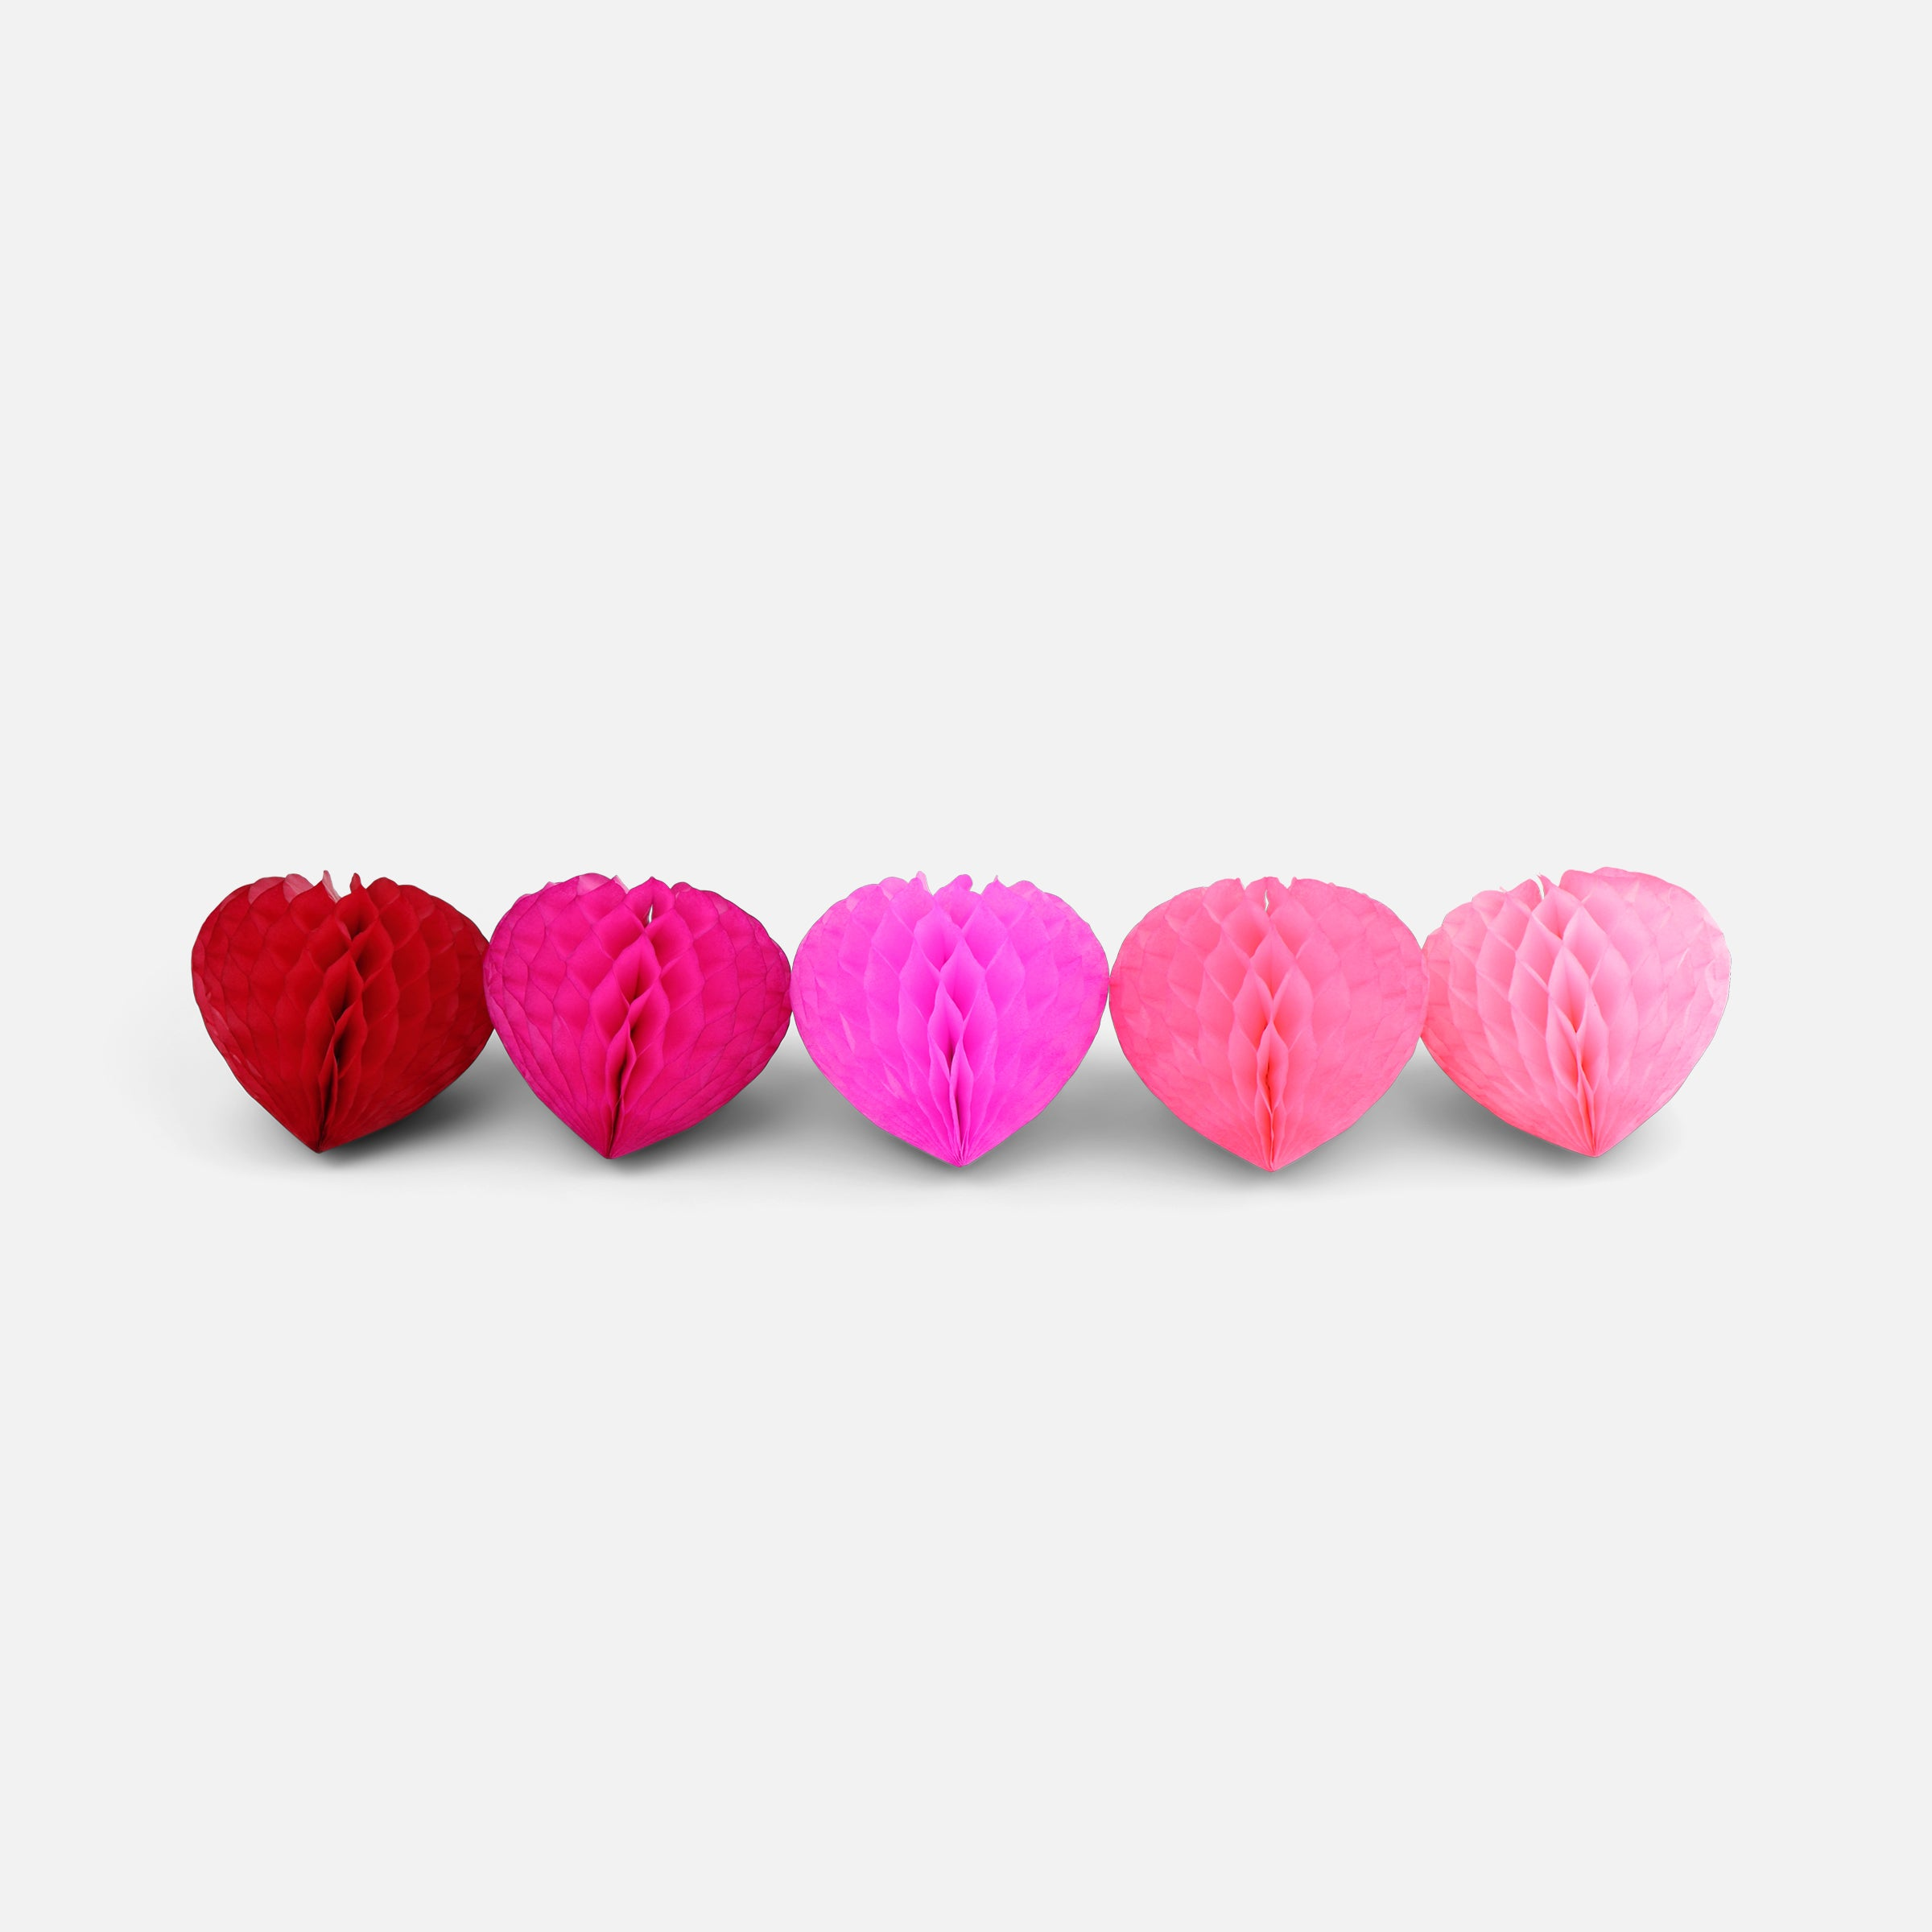 Honeycomb Heart 10cm Pinks, Pack of 5